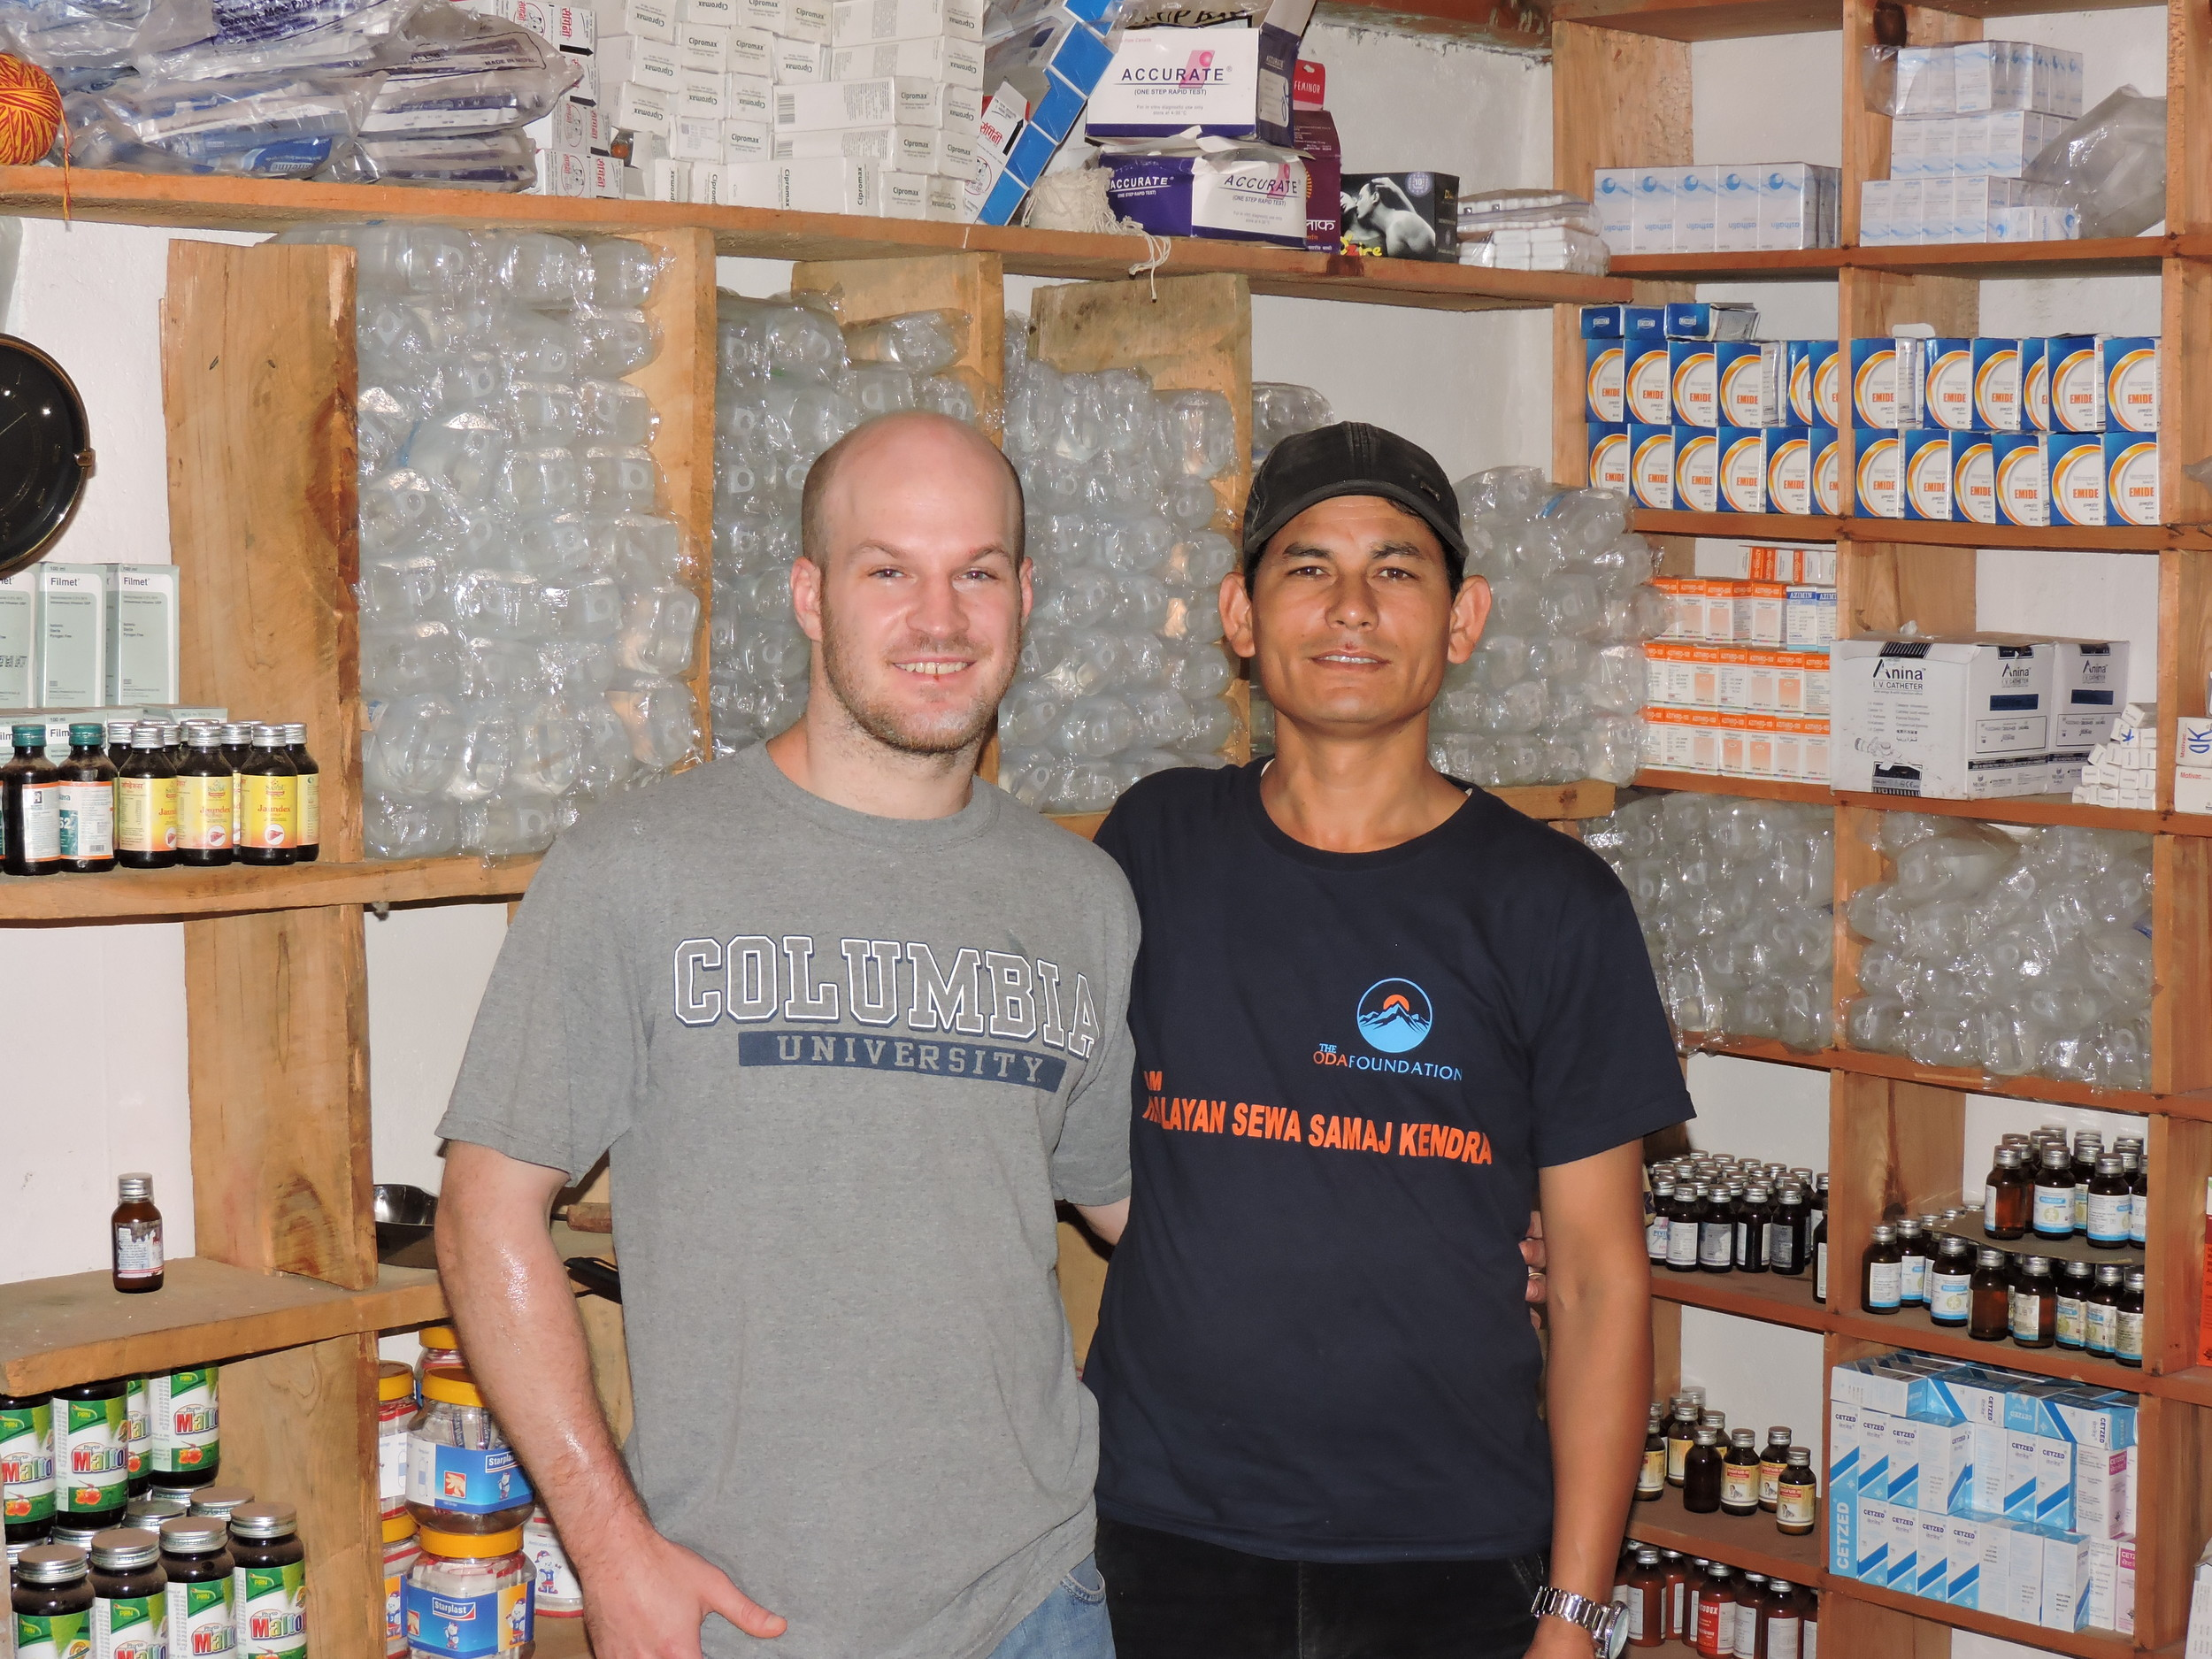 Peter and Dr. Mim in the Pharmacy